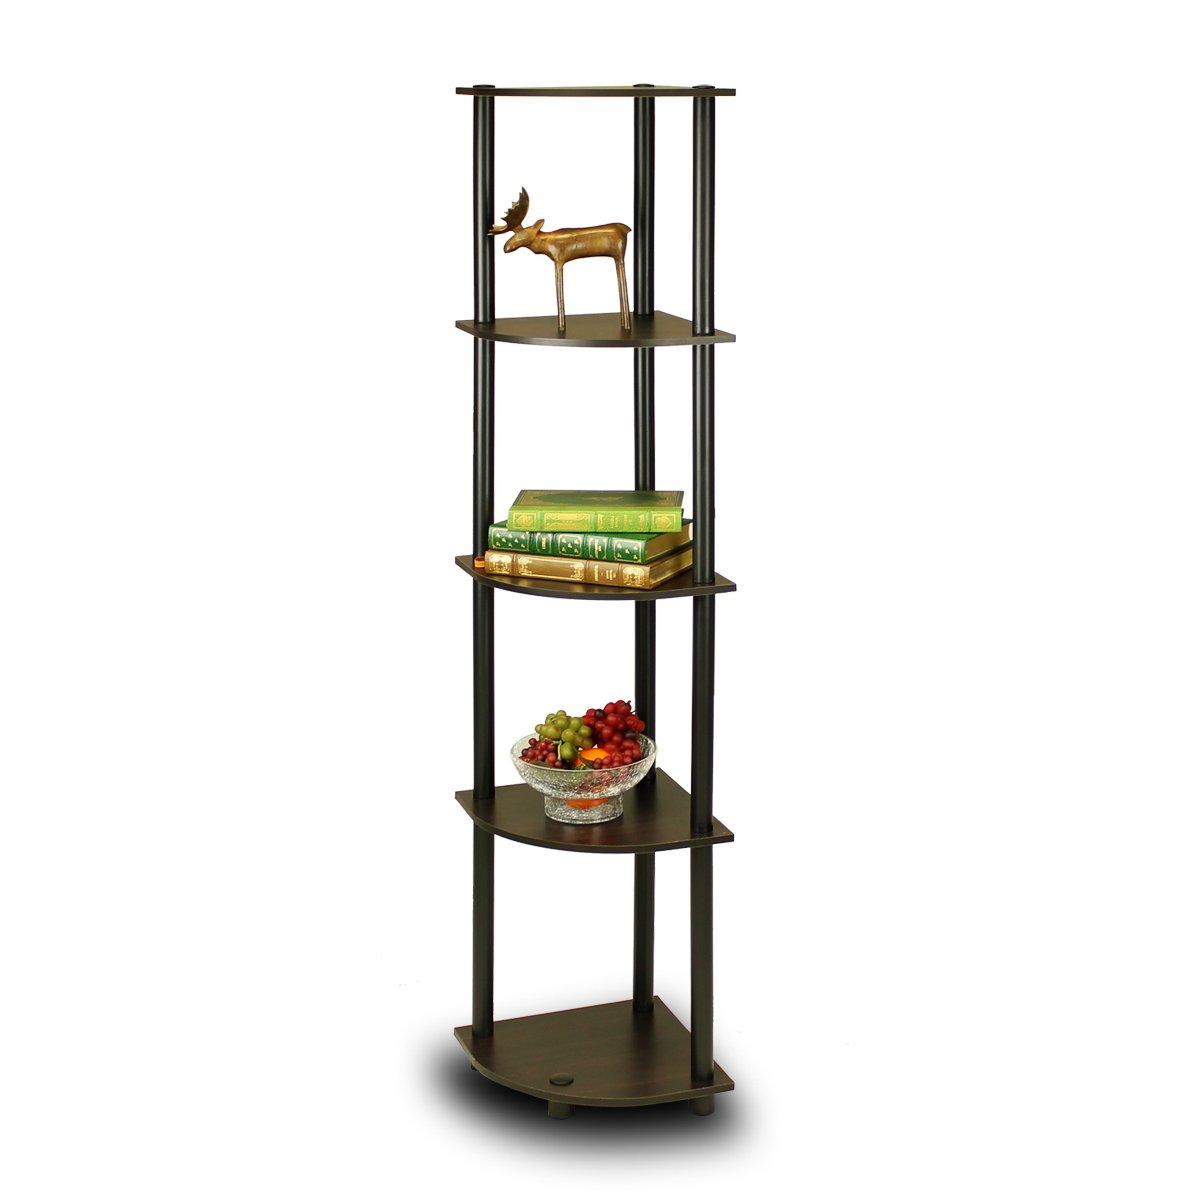 Amazon.com: Furinno 99811EX/BK Turn-N-Tube 5 Tier Corner Shelf,  Espresso/Black: Kitchen & Dining